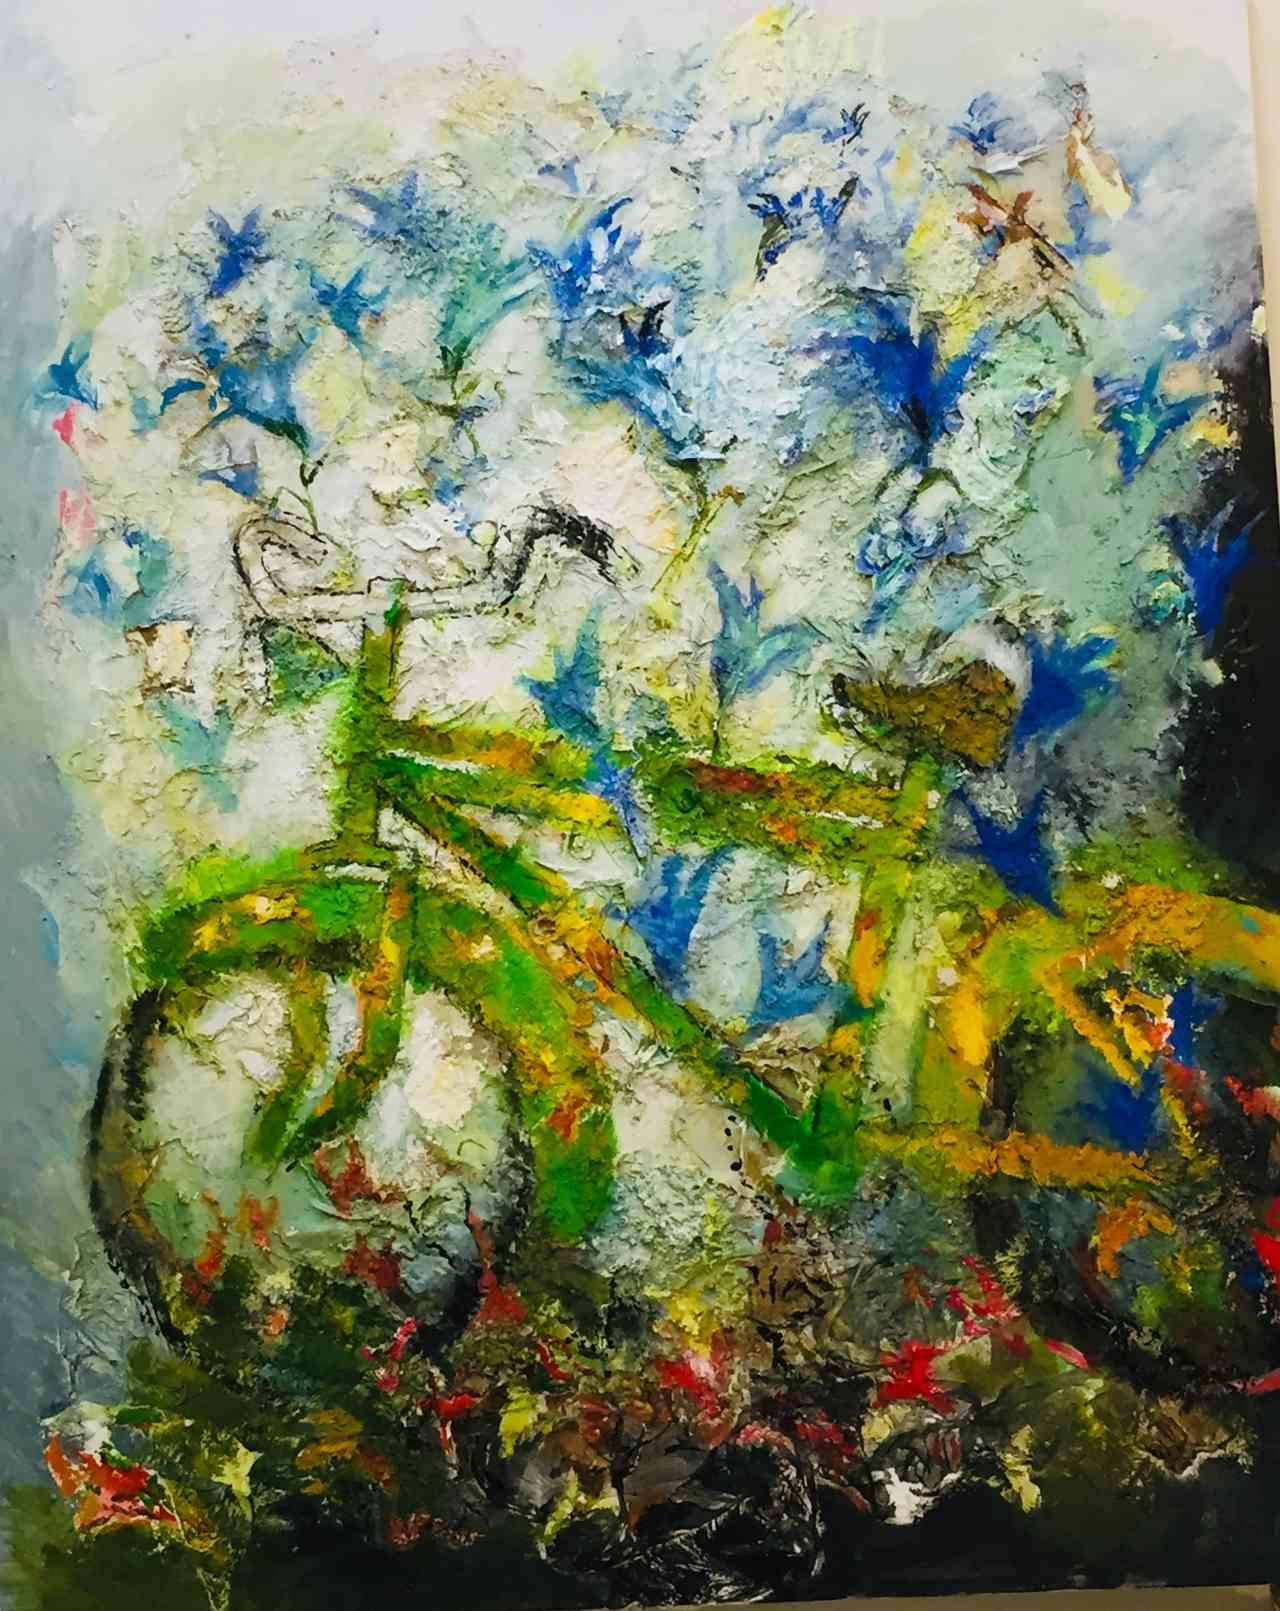 Giannis Kottis, Bike with flowers, oil on canvas, 160 x 130 cm, 2019